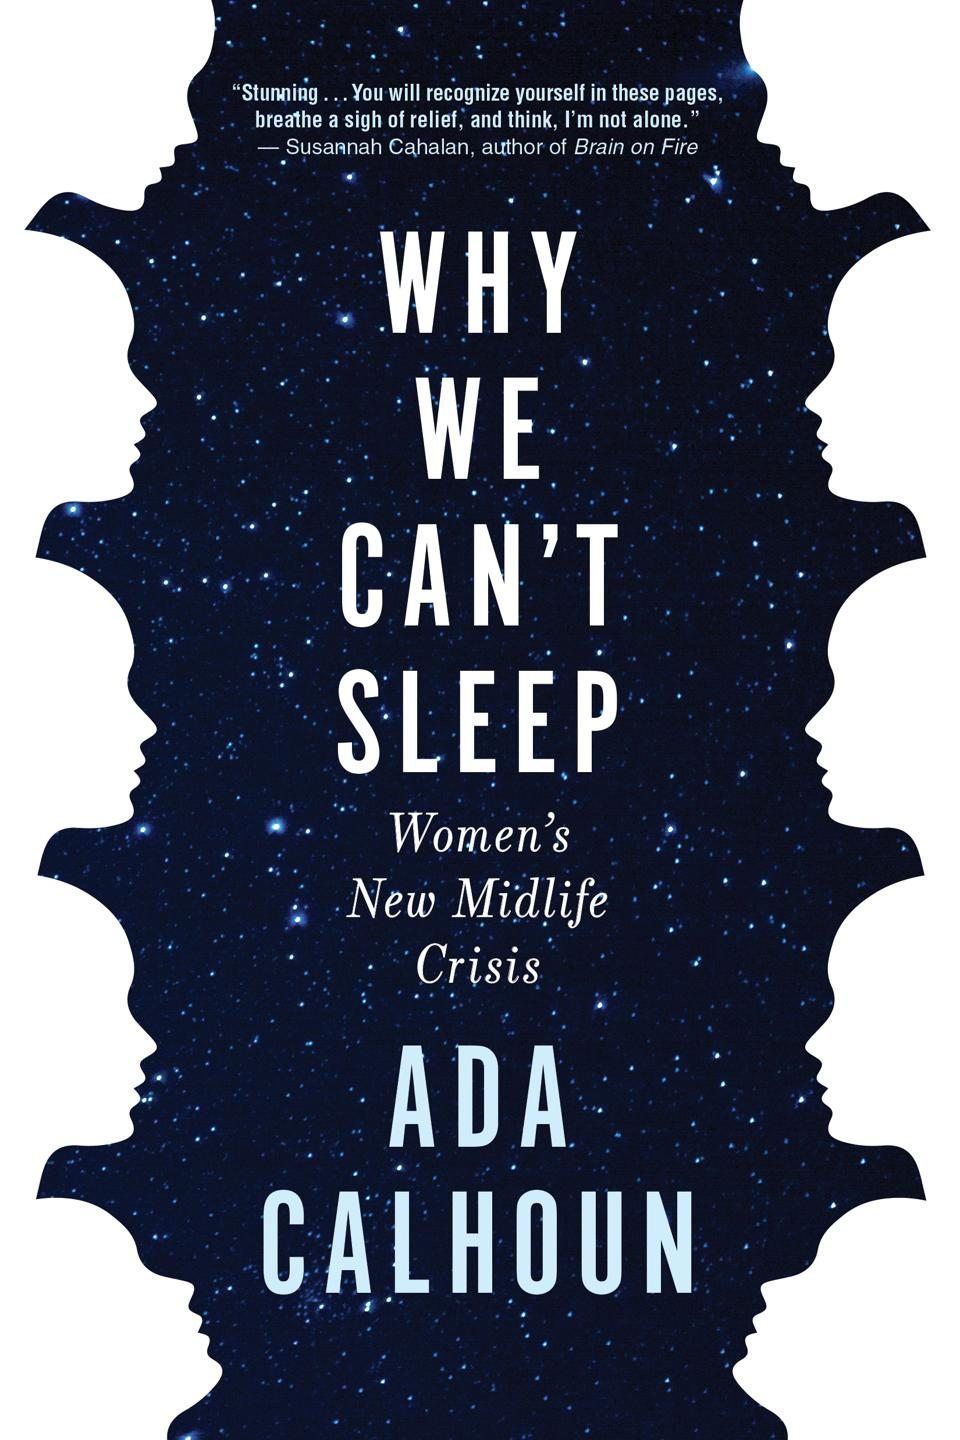 why we can't sleep womens new midlife crisis ada calhoun book cover grove press nonfiction